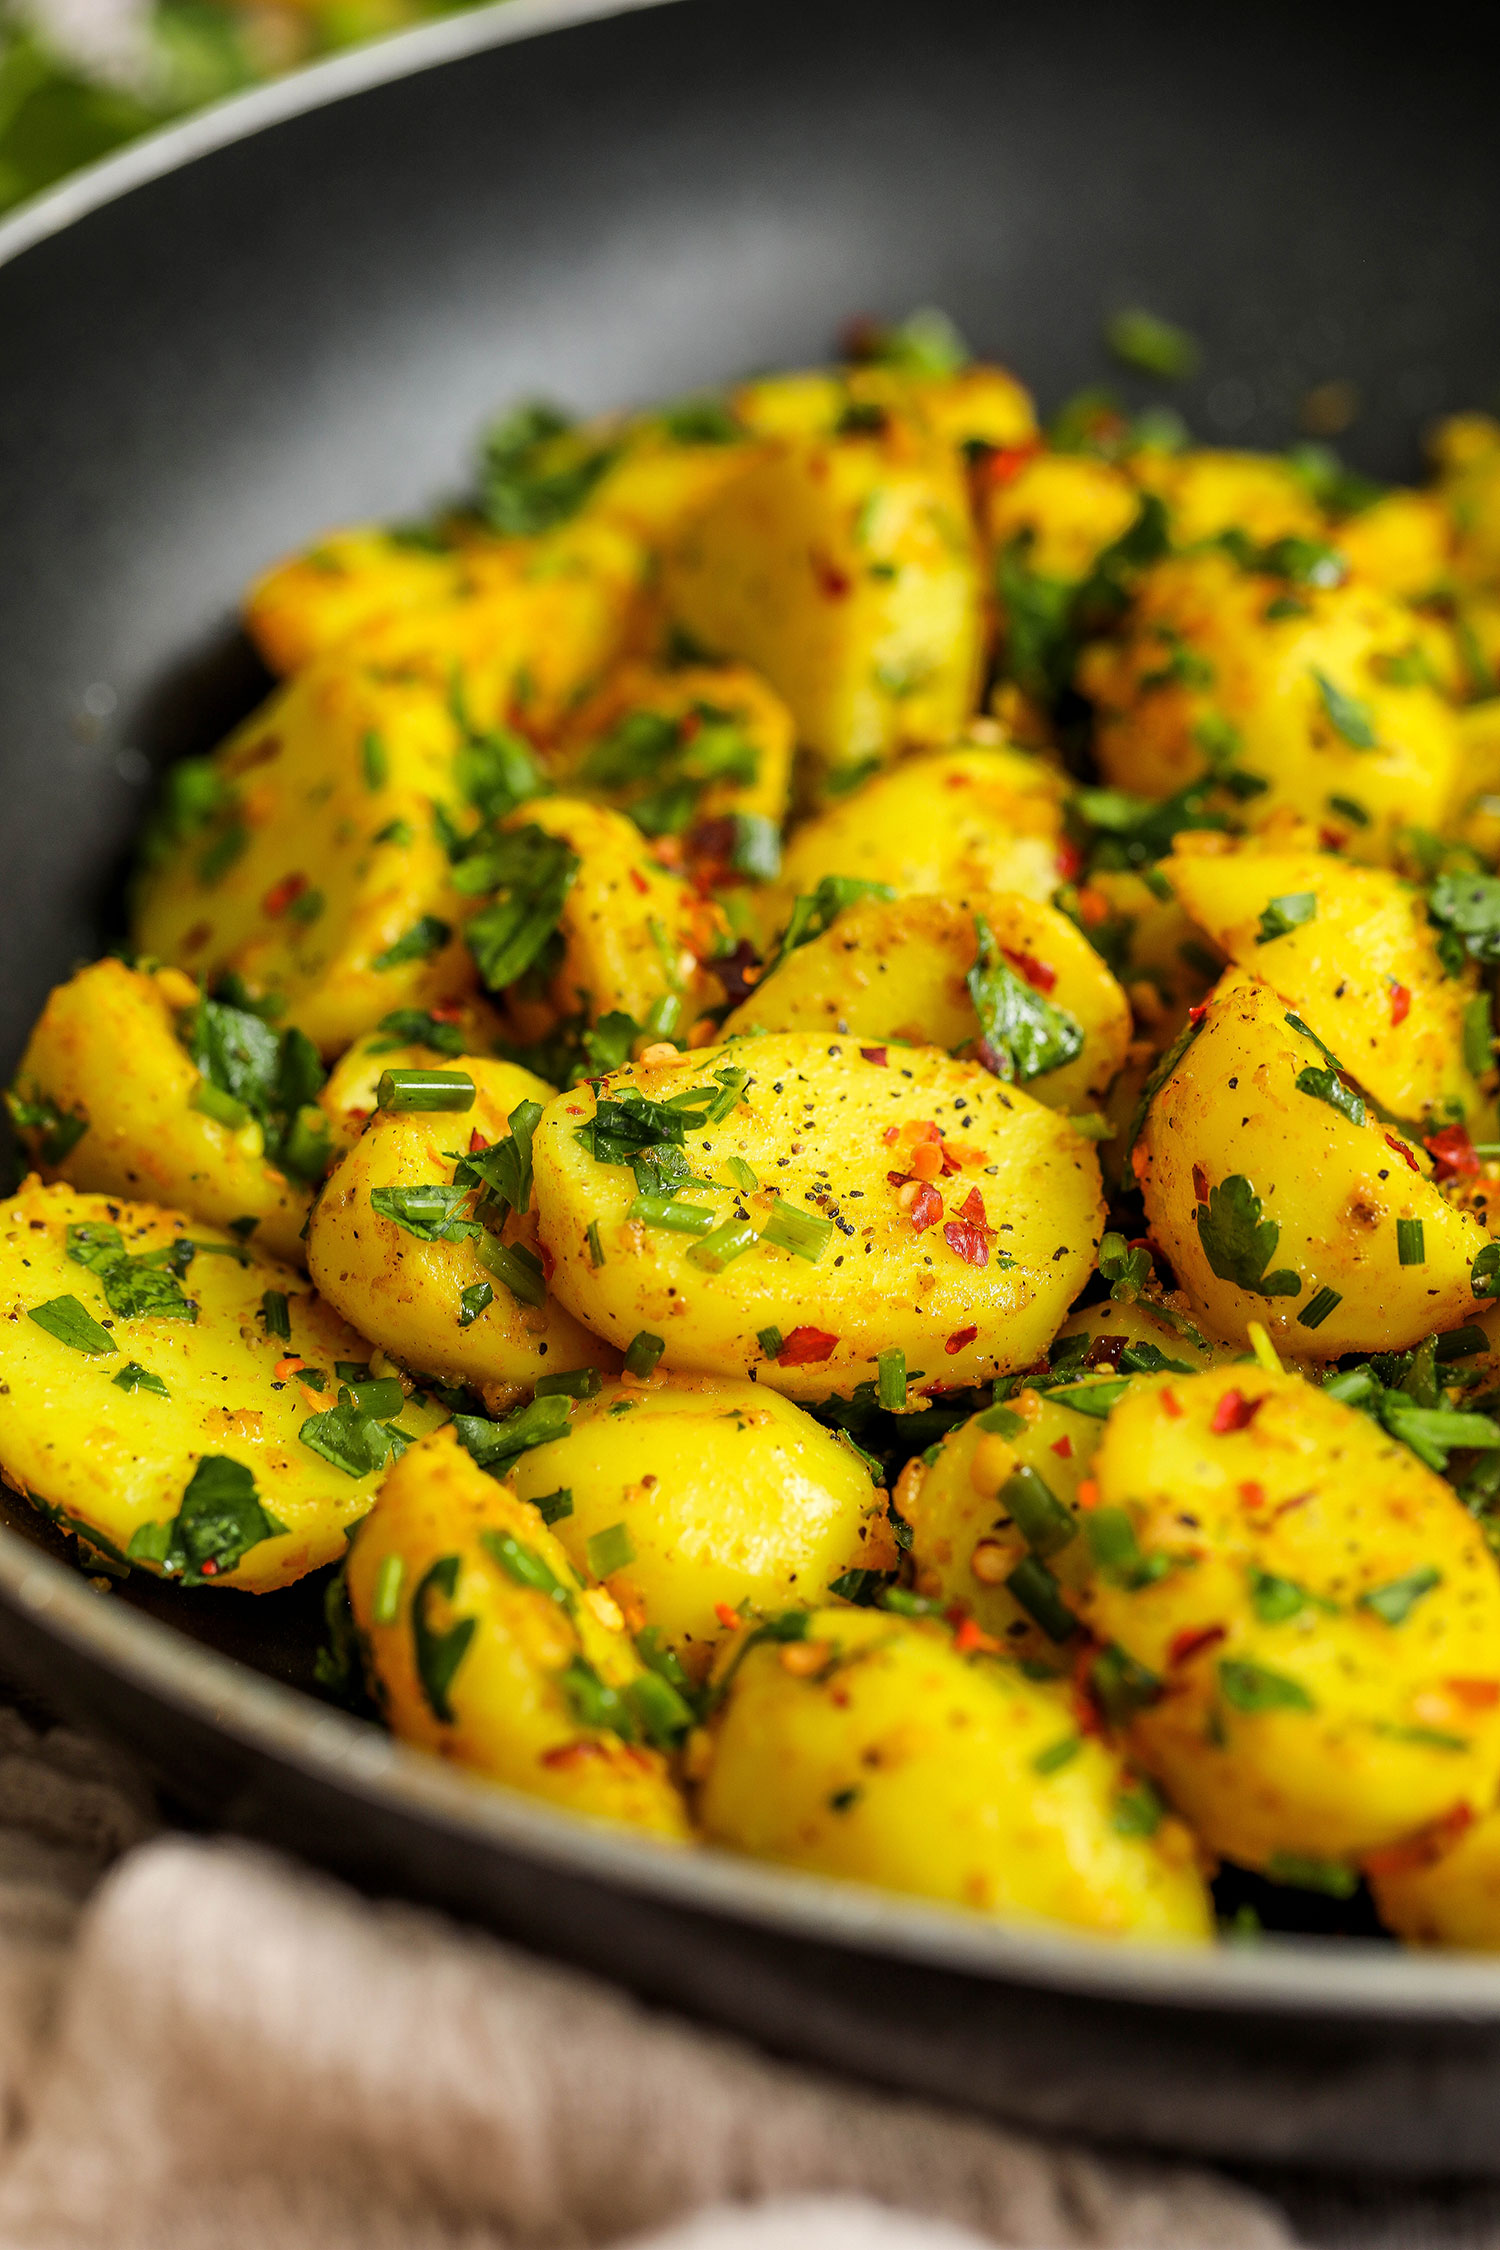 Herby Lemon Turmeric Cornish New Potatoes